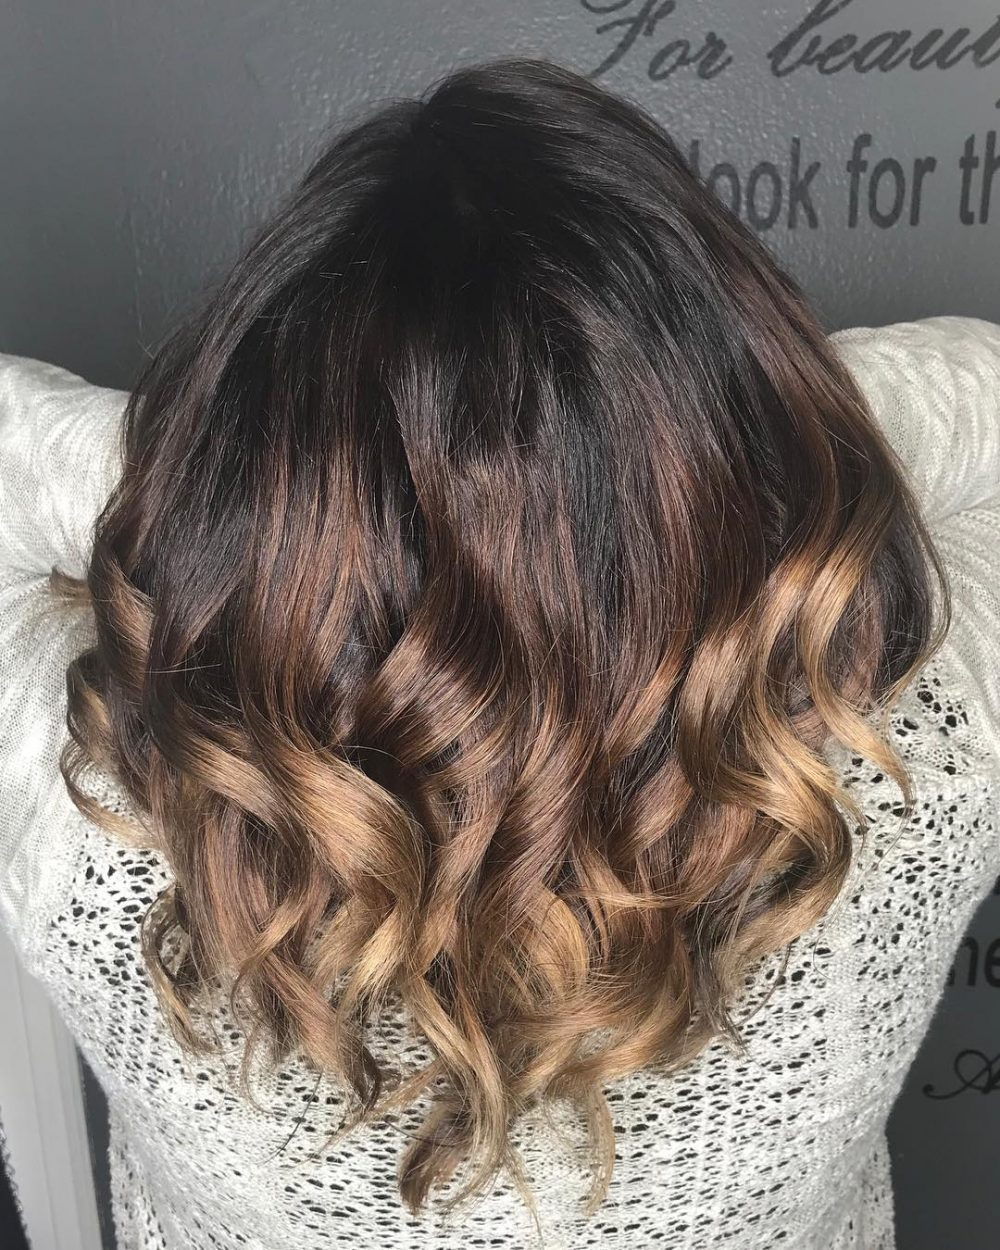 Blended Dimension hairstyle